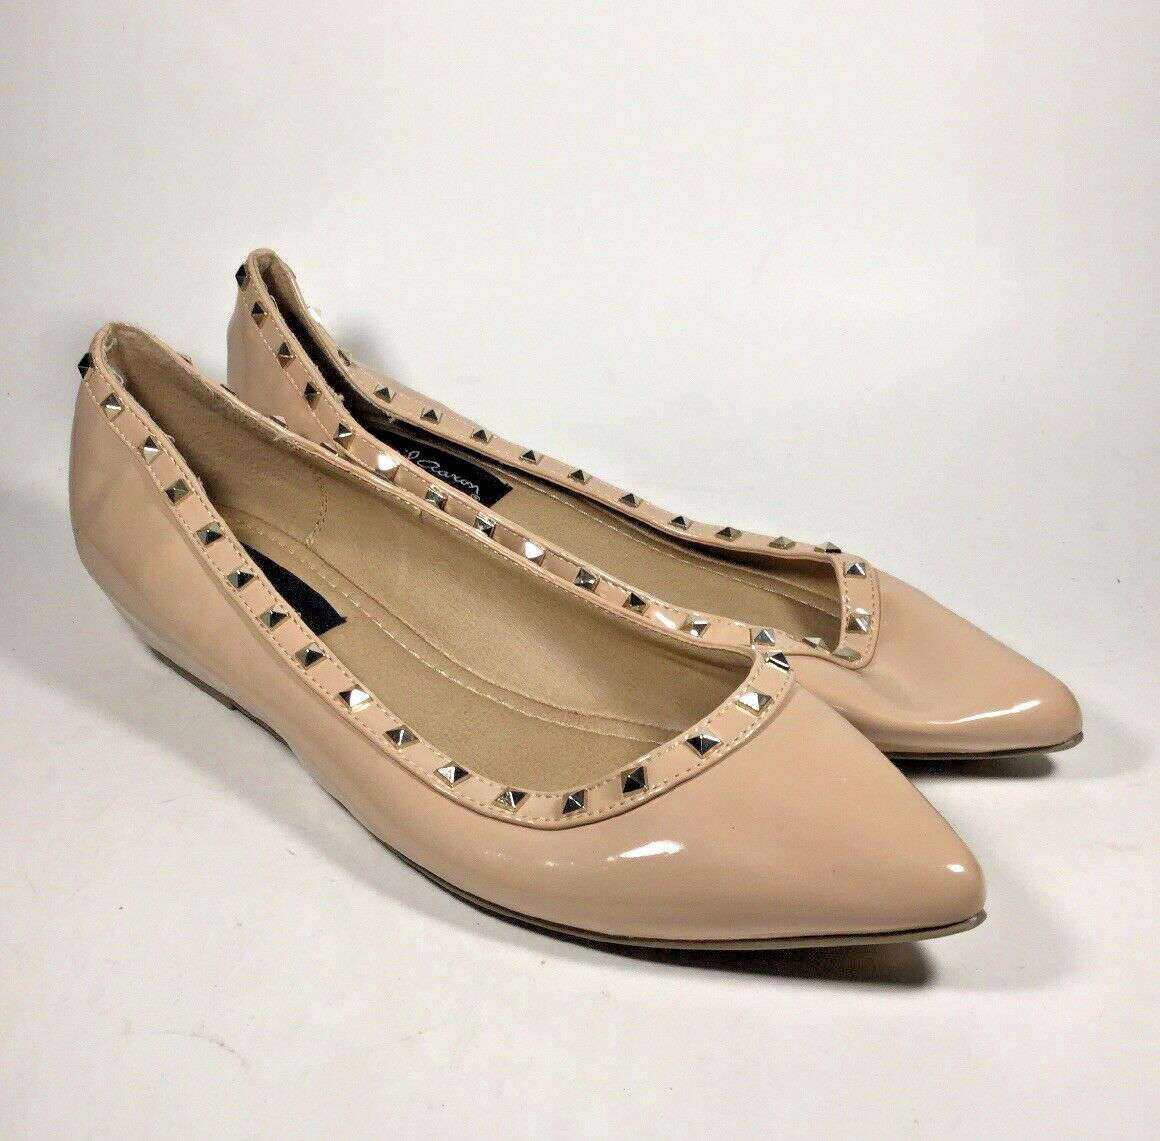 M4518L PreOwned Women's David Aaron Nude Pointy Toe Flats US 10 M